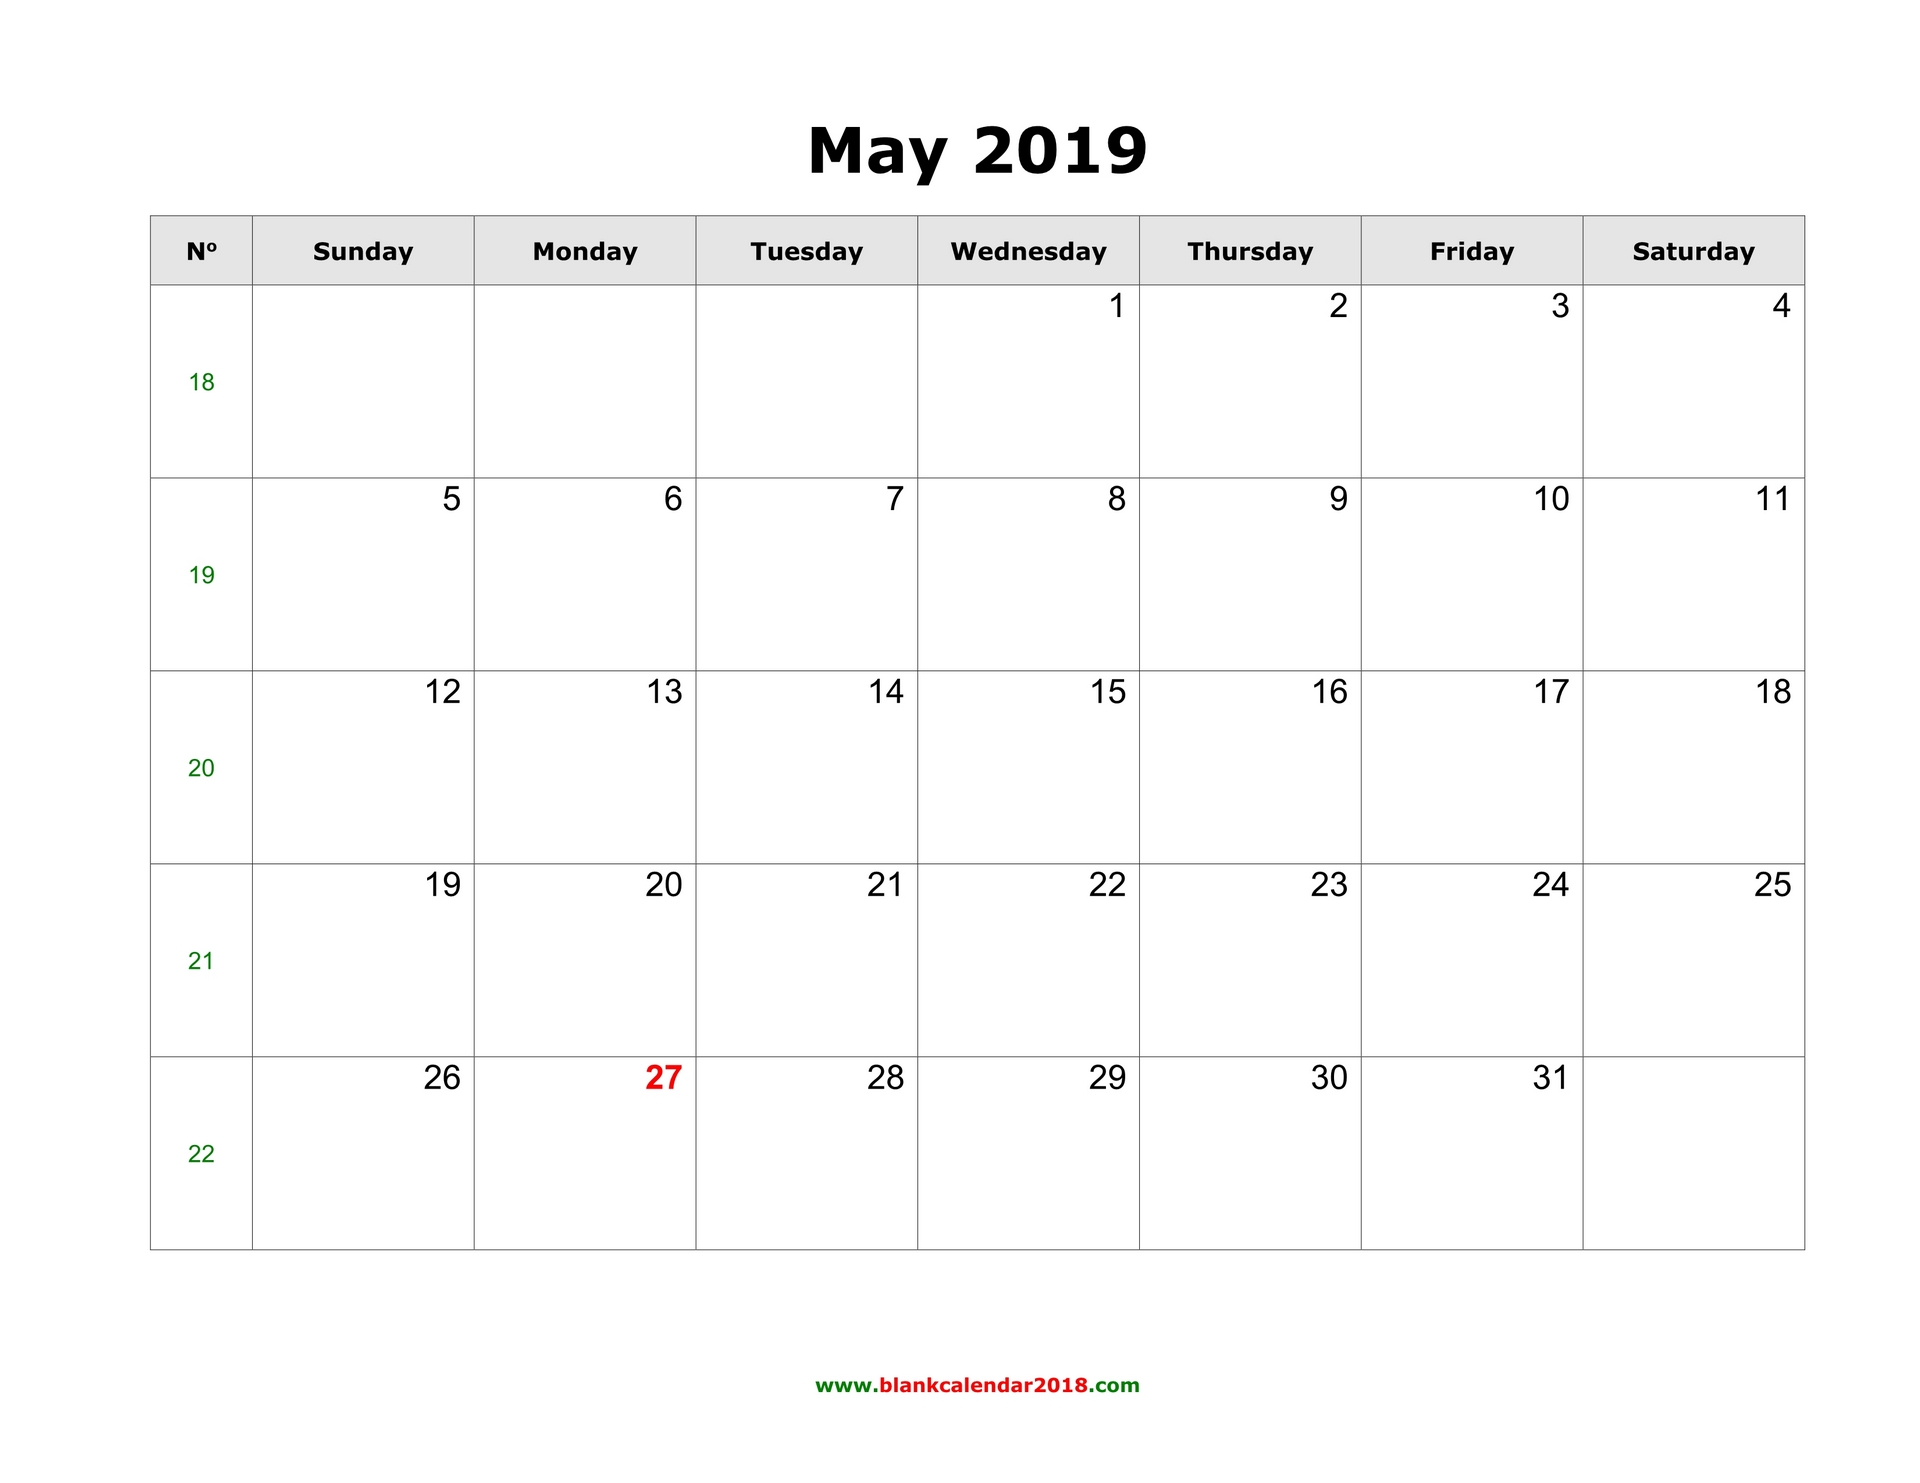 Calendar For 2019 May Blank Calendar for May 2019